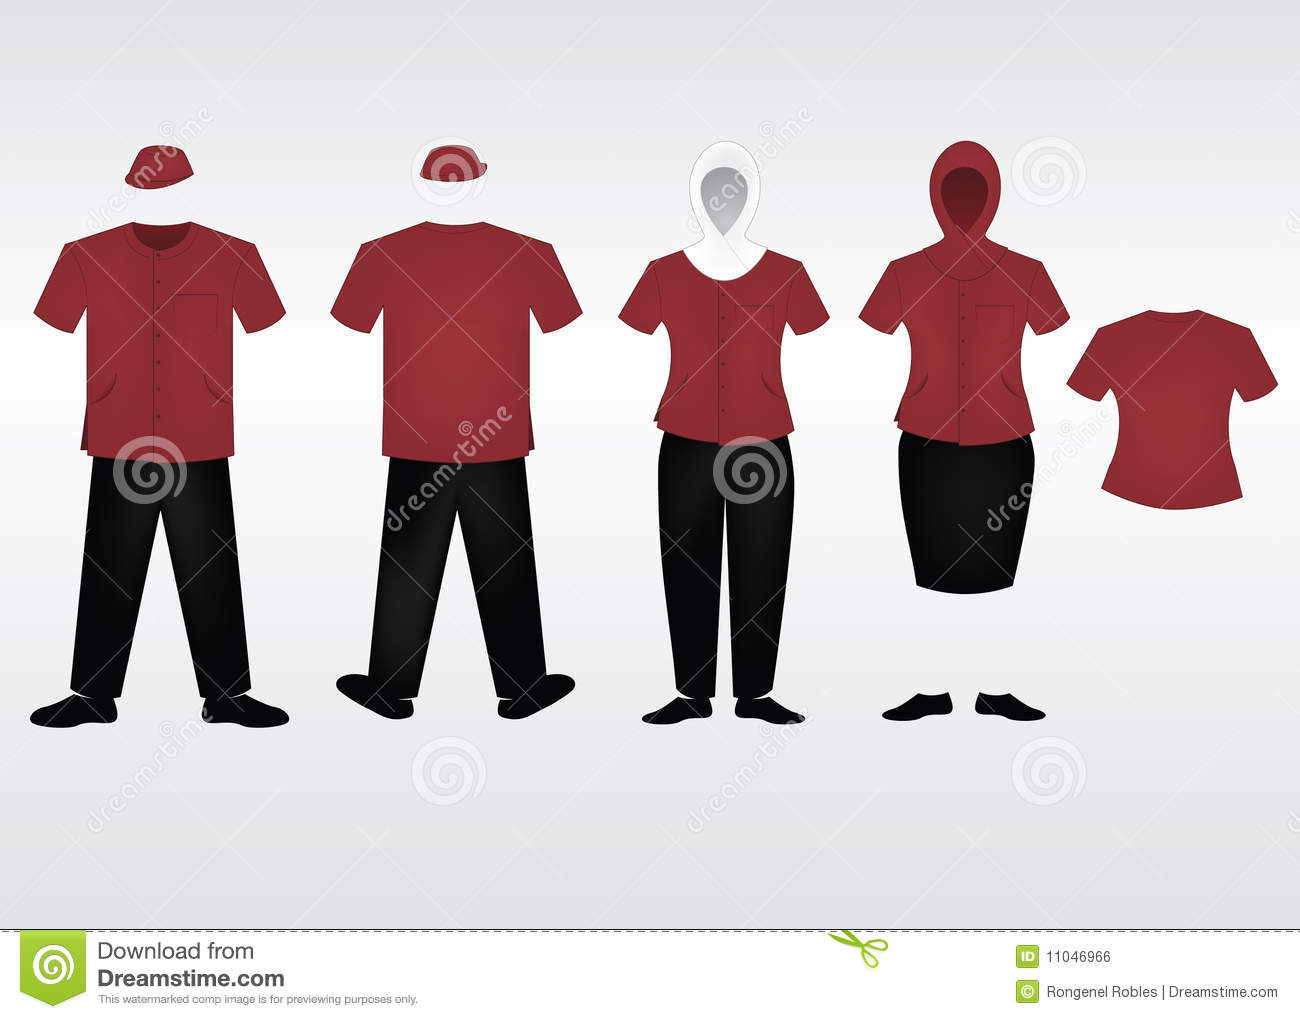 Staff Uniform Template Royalty Free Stock Image - Image ...